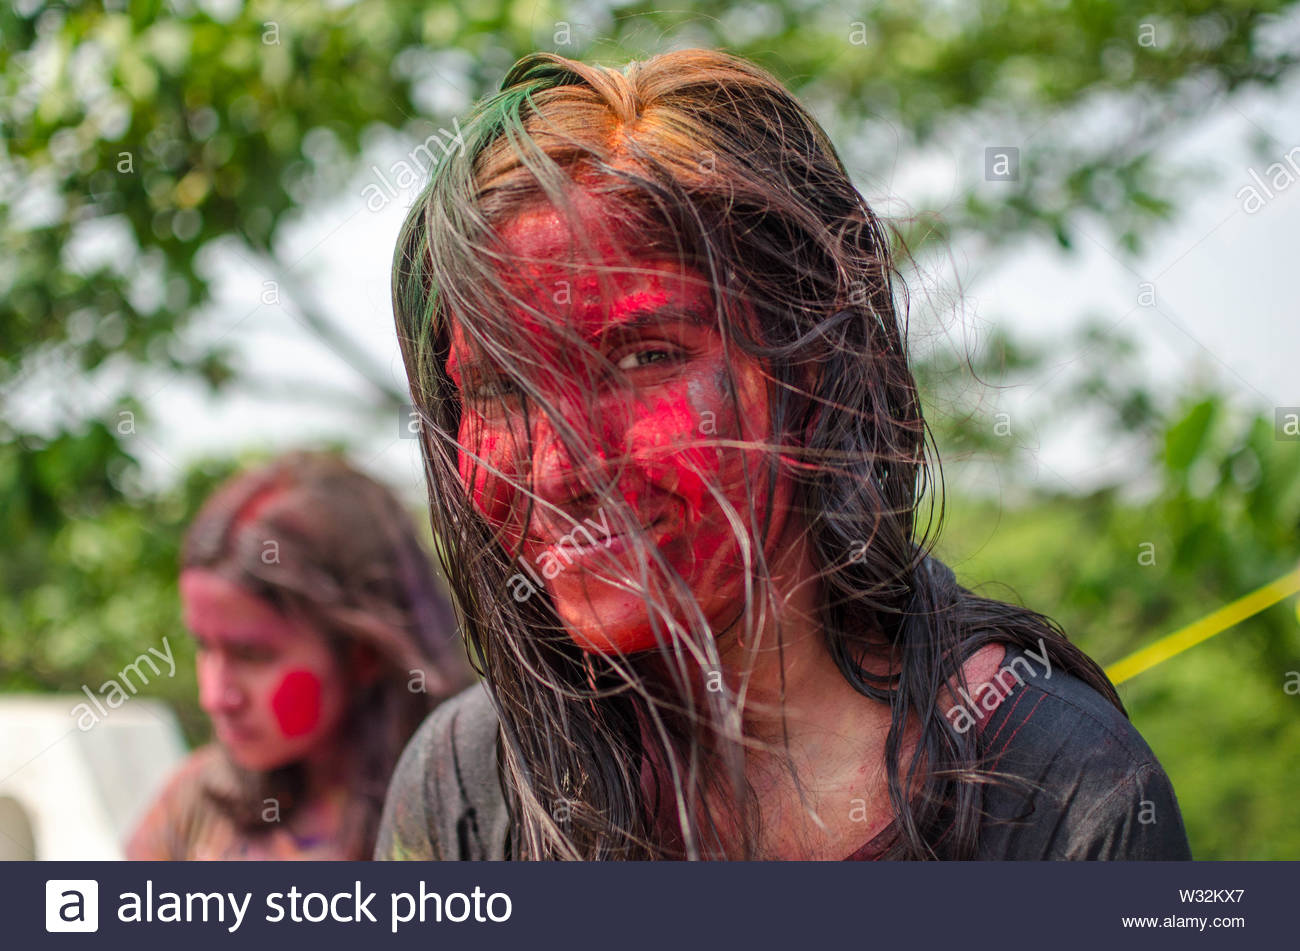 Young woman covered in powder paint - Stock Image